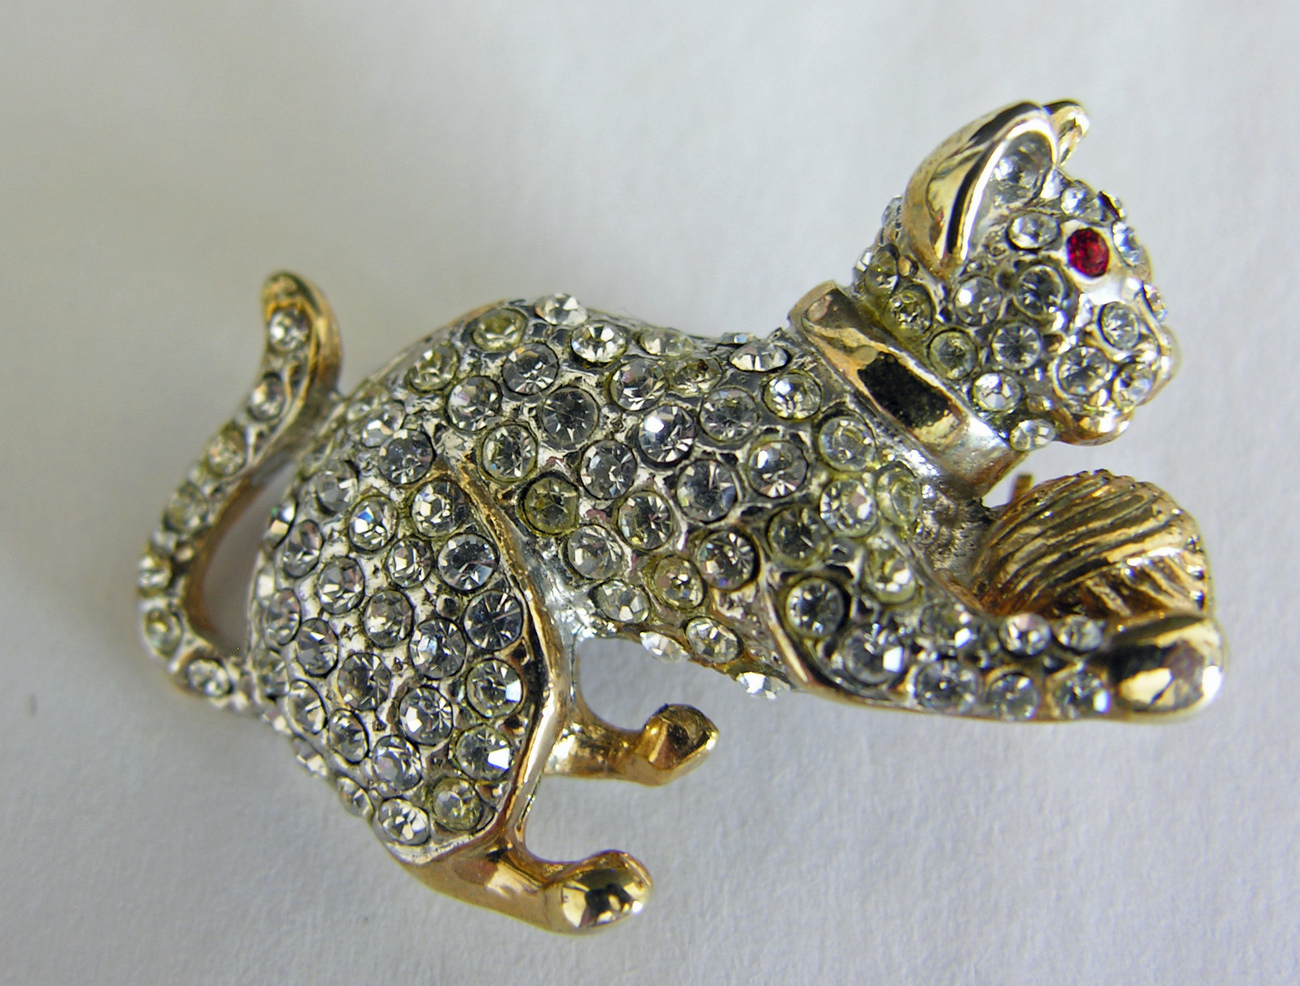 Rhinestone_cat_brooch_4